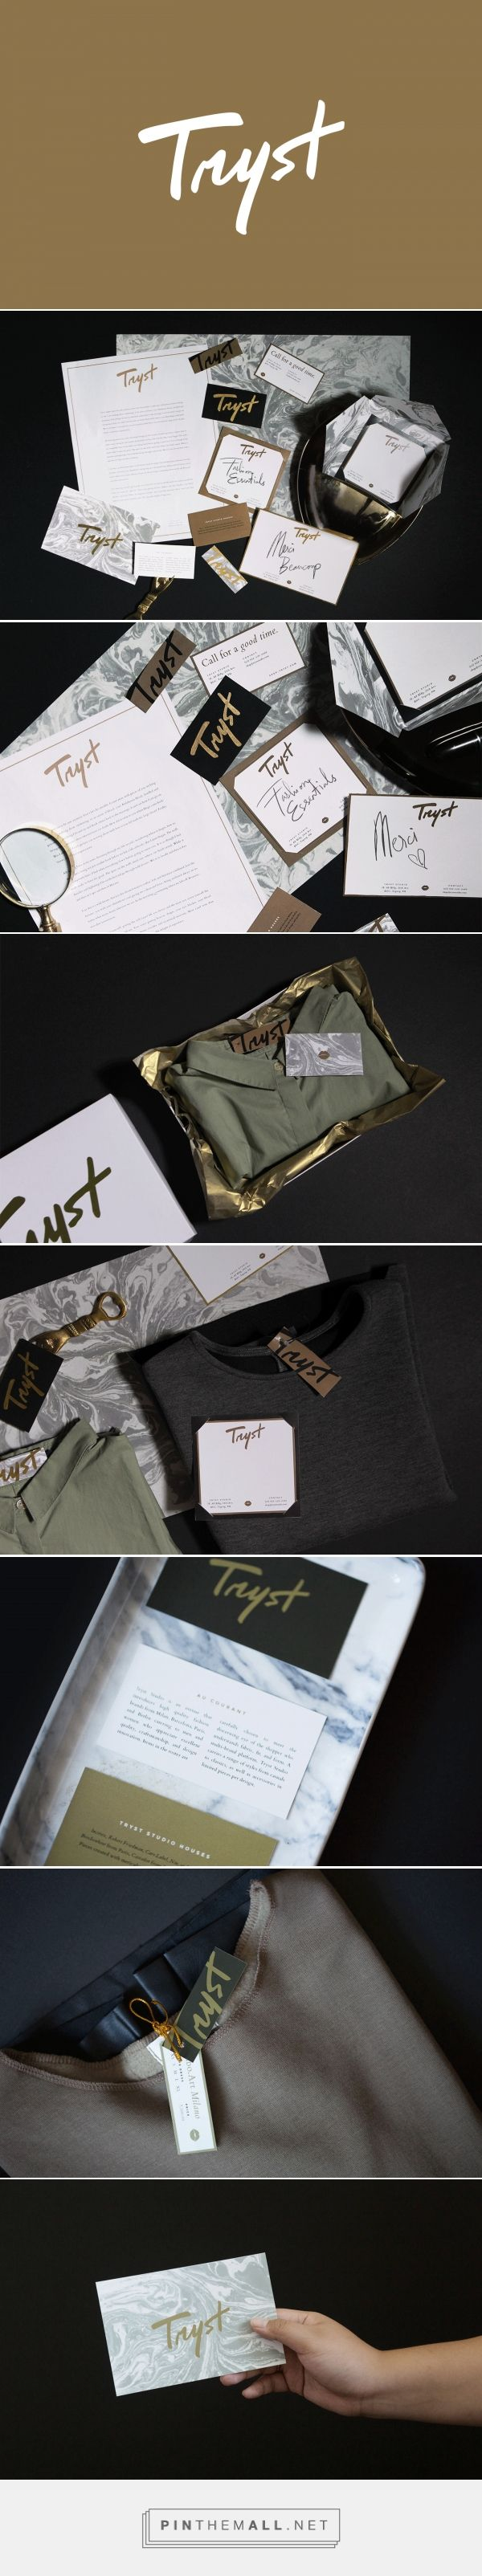 Tryst Fashion Boutique Curator Branding by Tintin Lontoc | Fivestar Branding Agency – Design and Branding Agency & Curated Inspiration Gallery